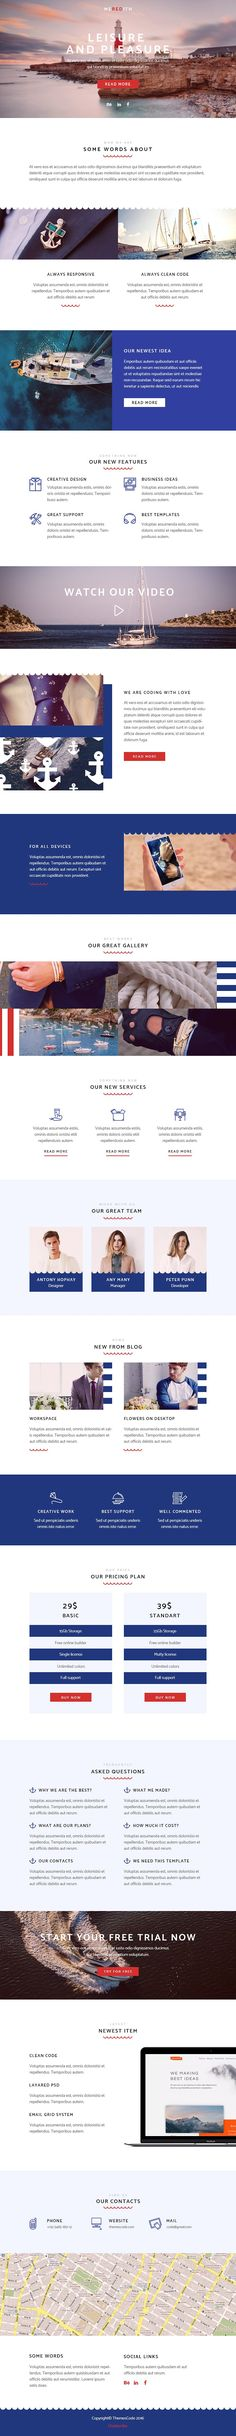 25 Email templates bundle + Builder by ThemesCode on @creativemarket